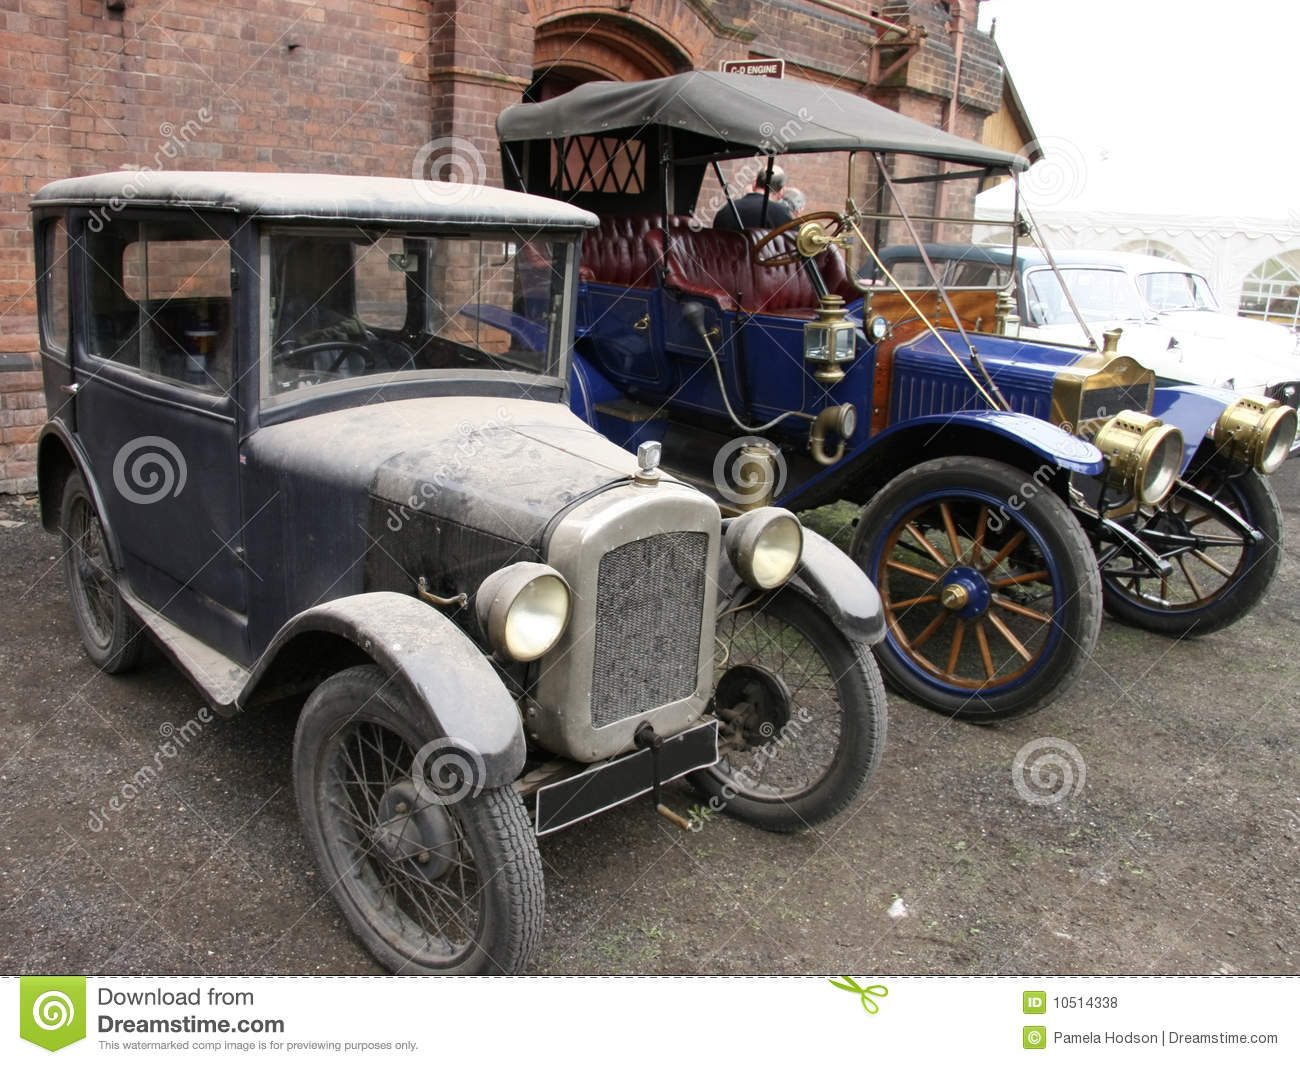 Two old vintage cars stock photo. Image of metallic, auto - 10514338